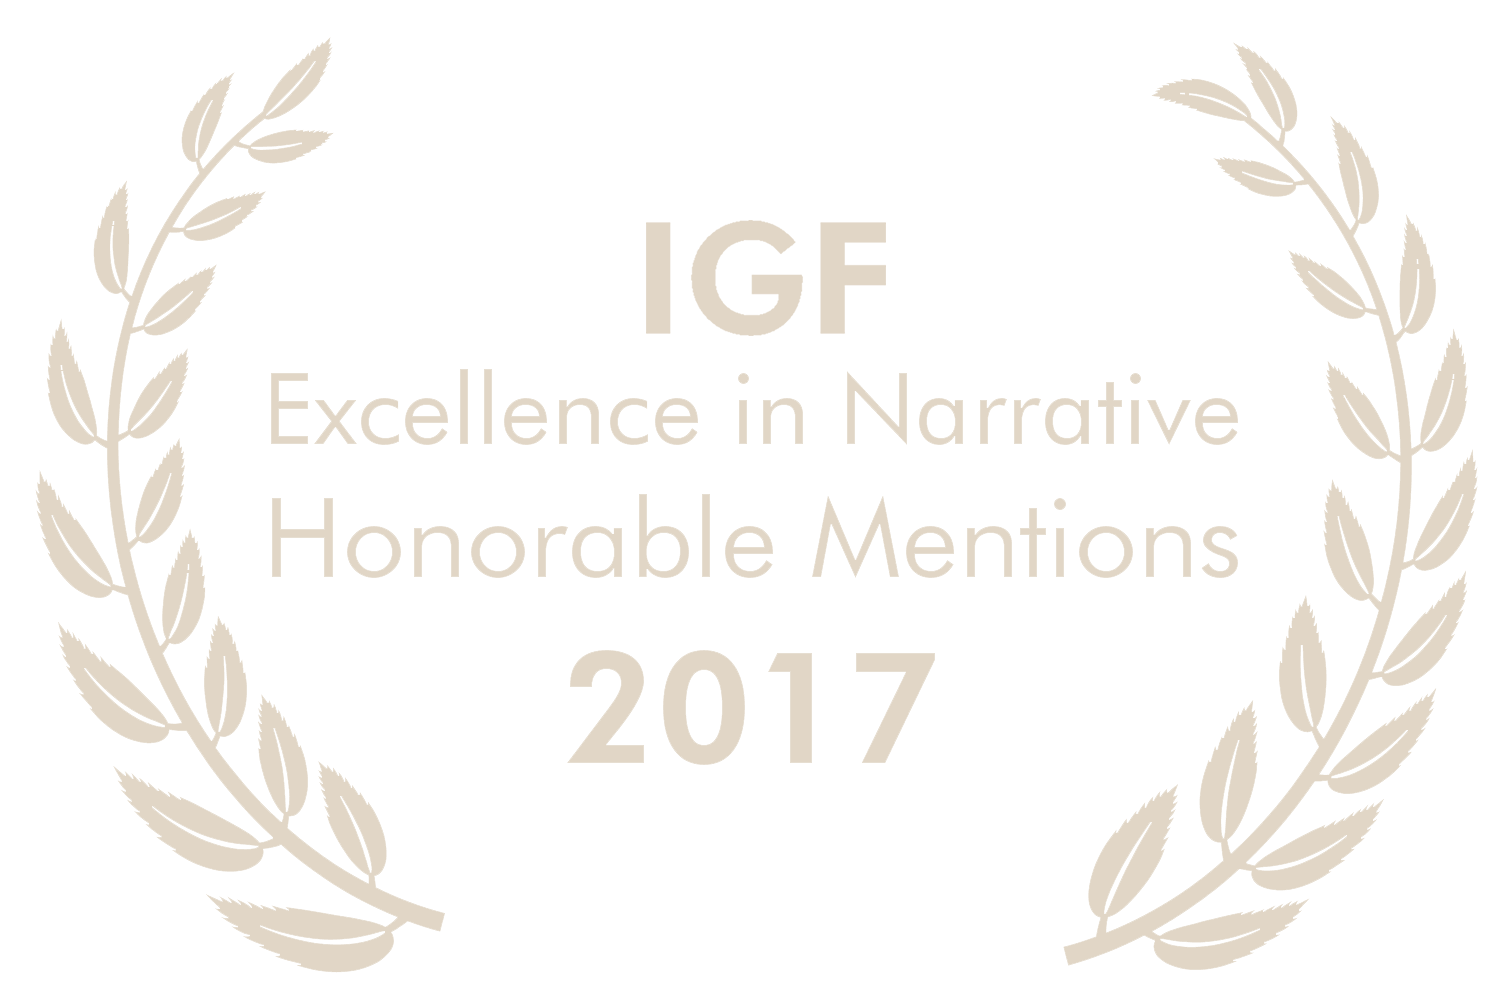 Honorable Mentions Excellence in Narrative 2017